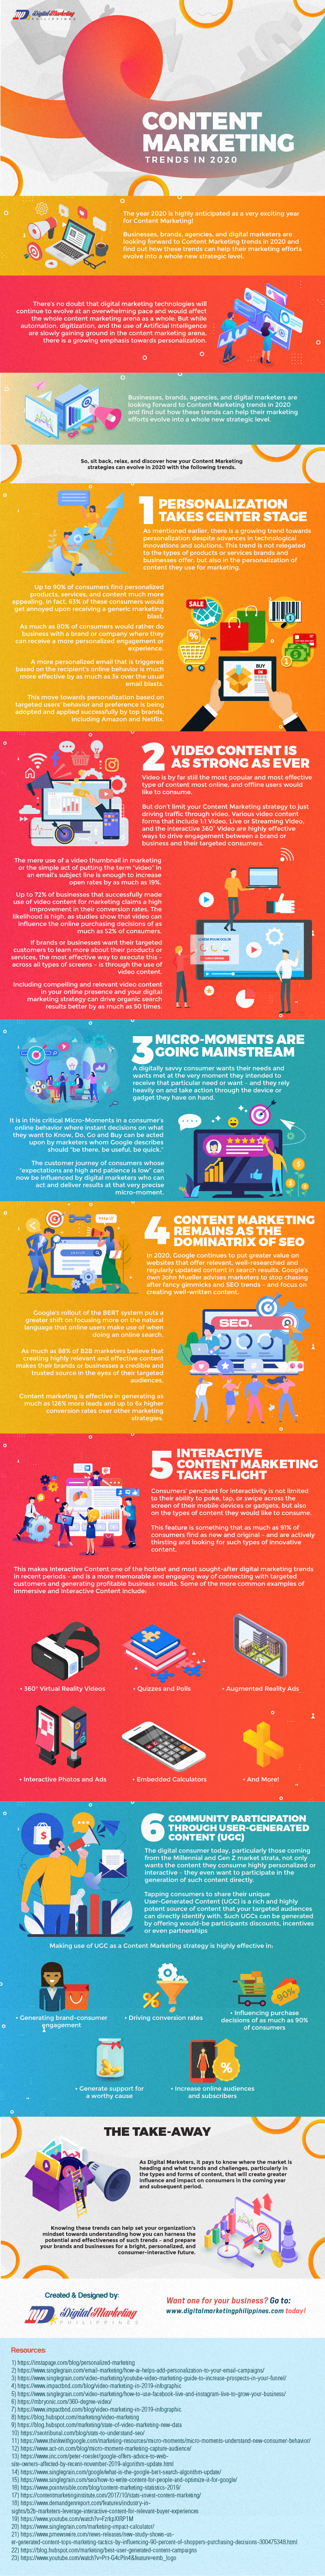 Content Marketing Trends in 2020 [Infographic]